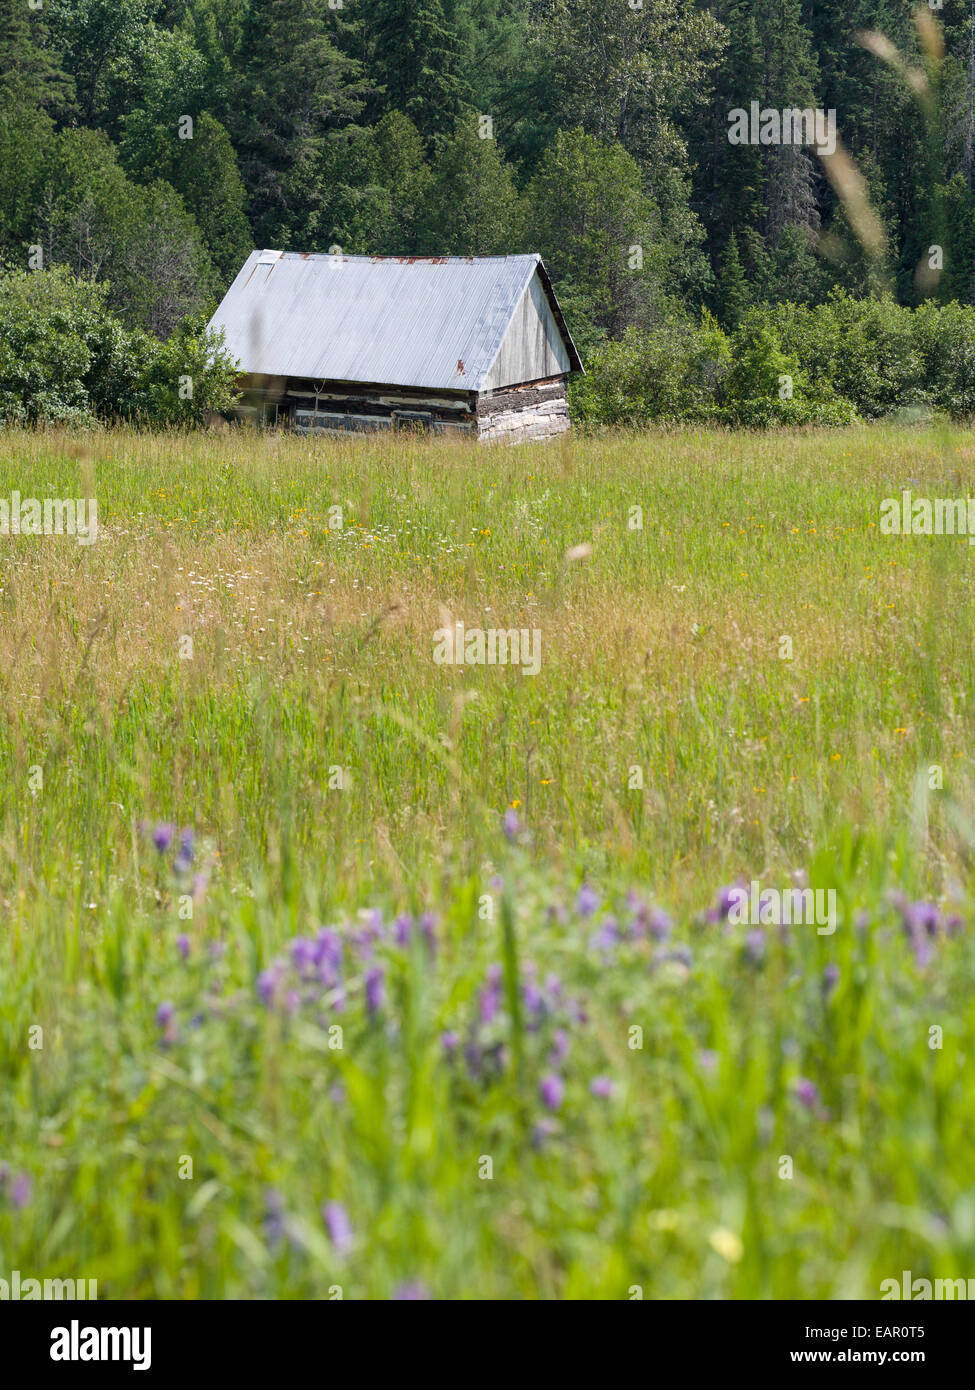 Log cabin in the woods by a lake -  Isolated Log Cabin In A Grassy Field Tommy S Cabin At The Edge Of The Woods